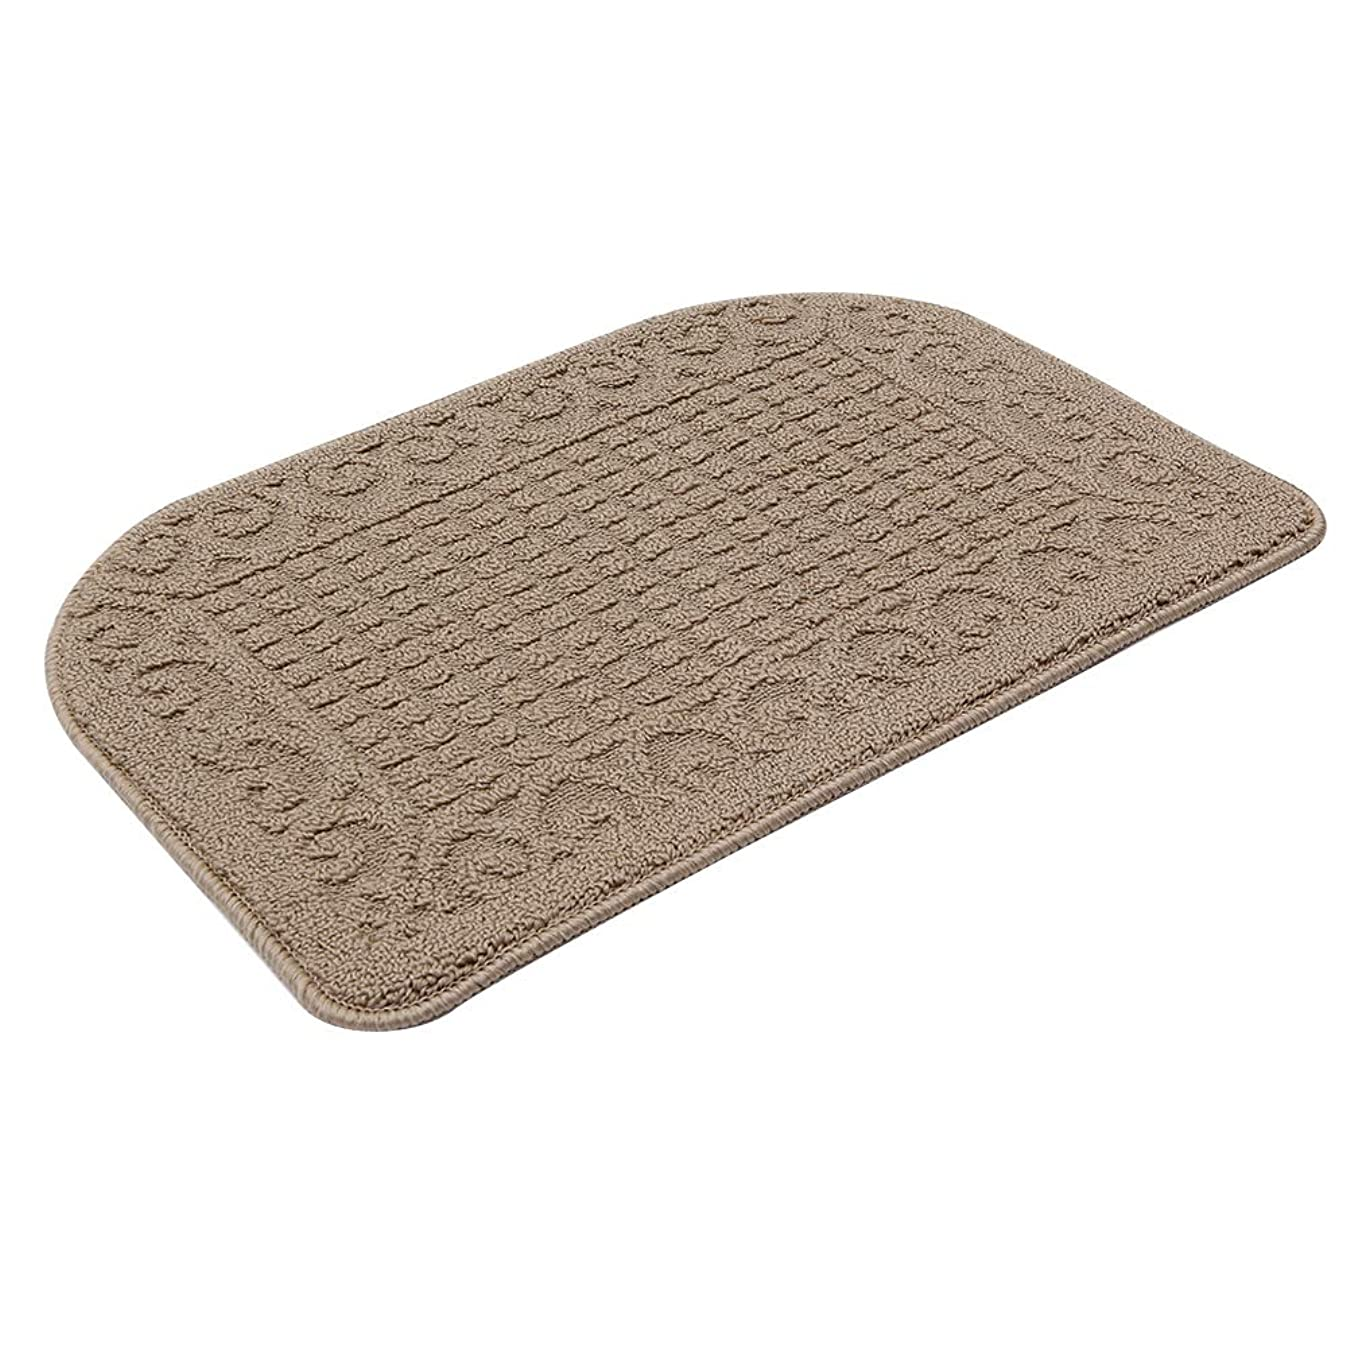 27X18 Inch Anti Fatigue Kitchen Rug Mats are Made of 100% Polypropylene Half Round Rug Cushion Specialized in Anti Slippery and Machine Washable,Beige